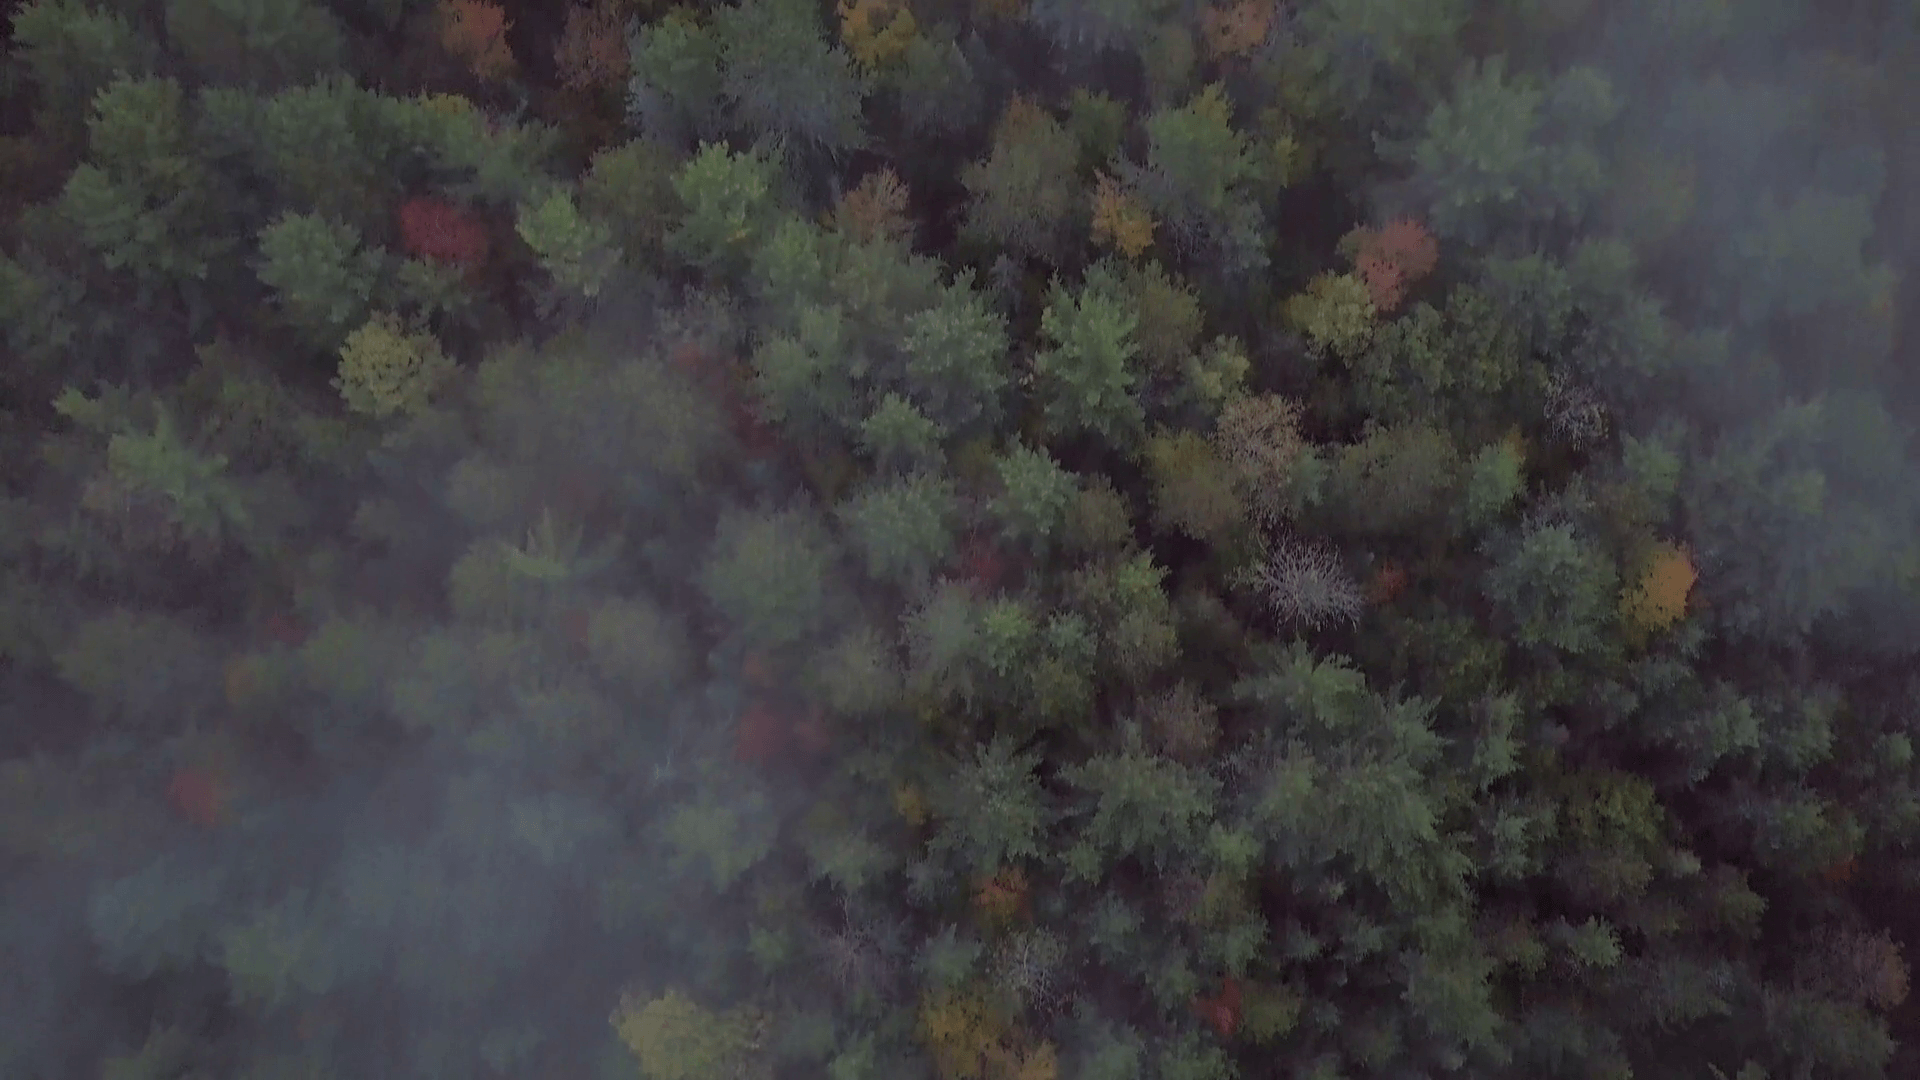 Aerial Sunrise Overhead Shot Of Fall Forest Colors Below Drifting Fog Clouds Tilts Up To Reveal Huge Tall Rocky Cliff And Sunlit Mist in Kawarthas